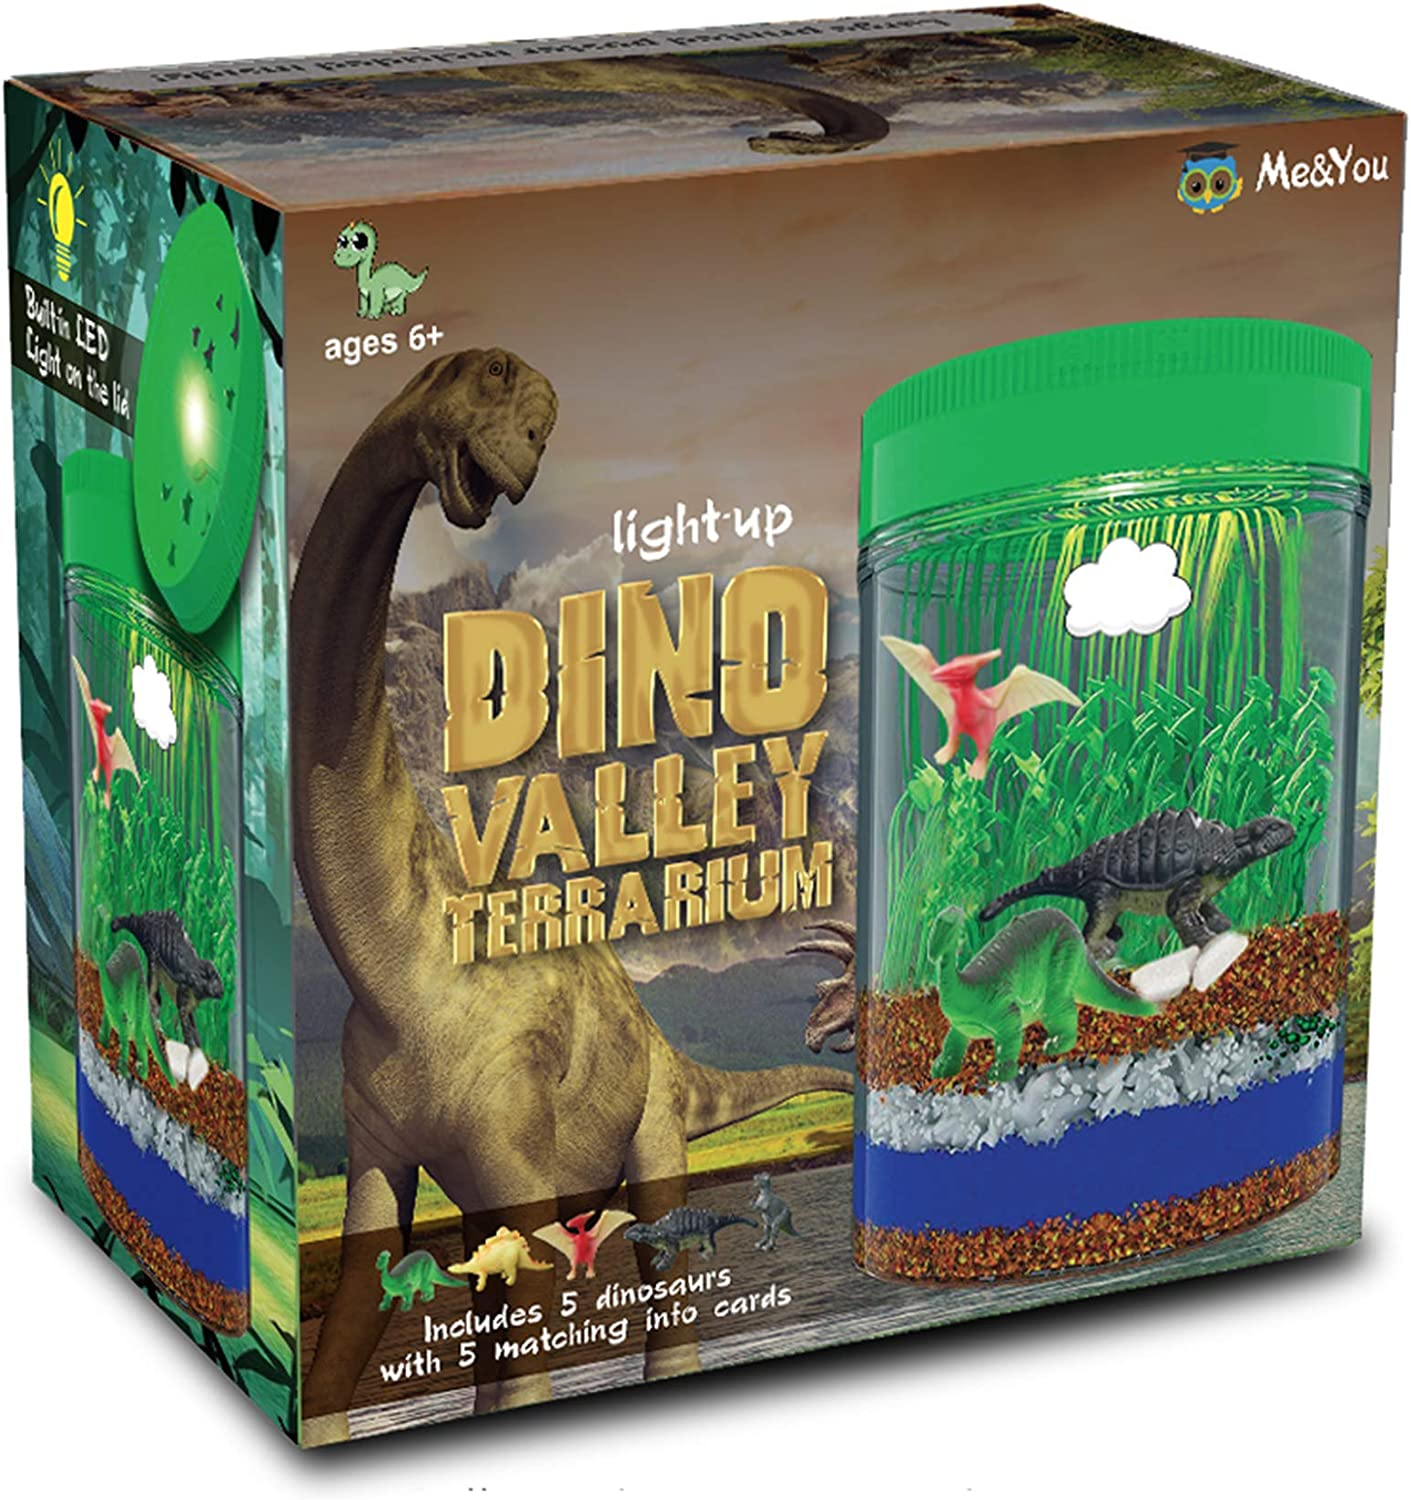 Light-Up Terrarium Kit for Kids with 5 Dinosaur Toys, STEM Educational DIY Science Project - Create Your Customized Mini Dinosaur Garden for Children - Best Gift for Boys and Girls Age 3, 4, 5, 6, 7